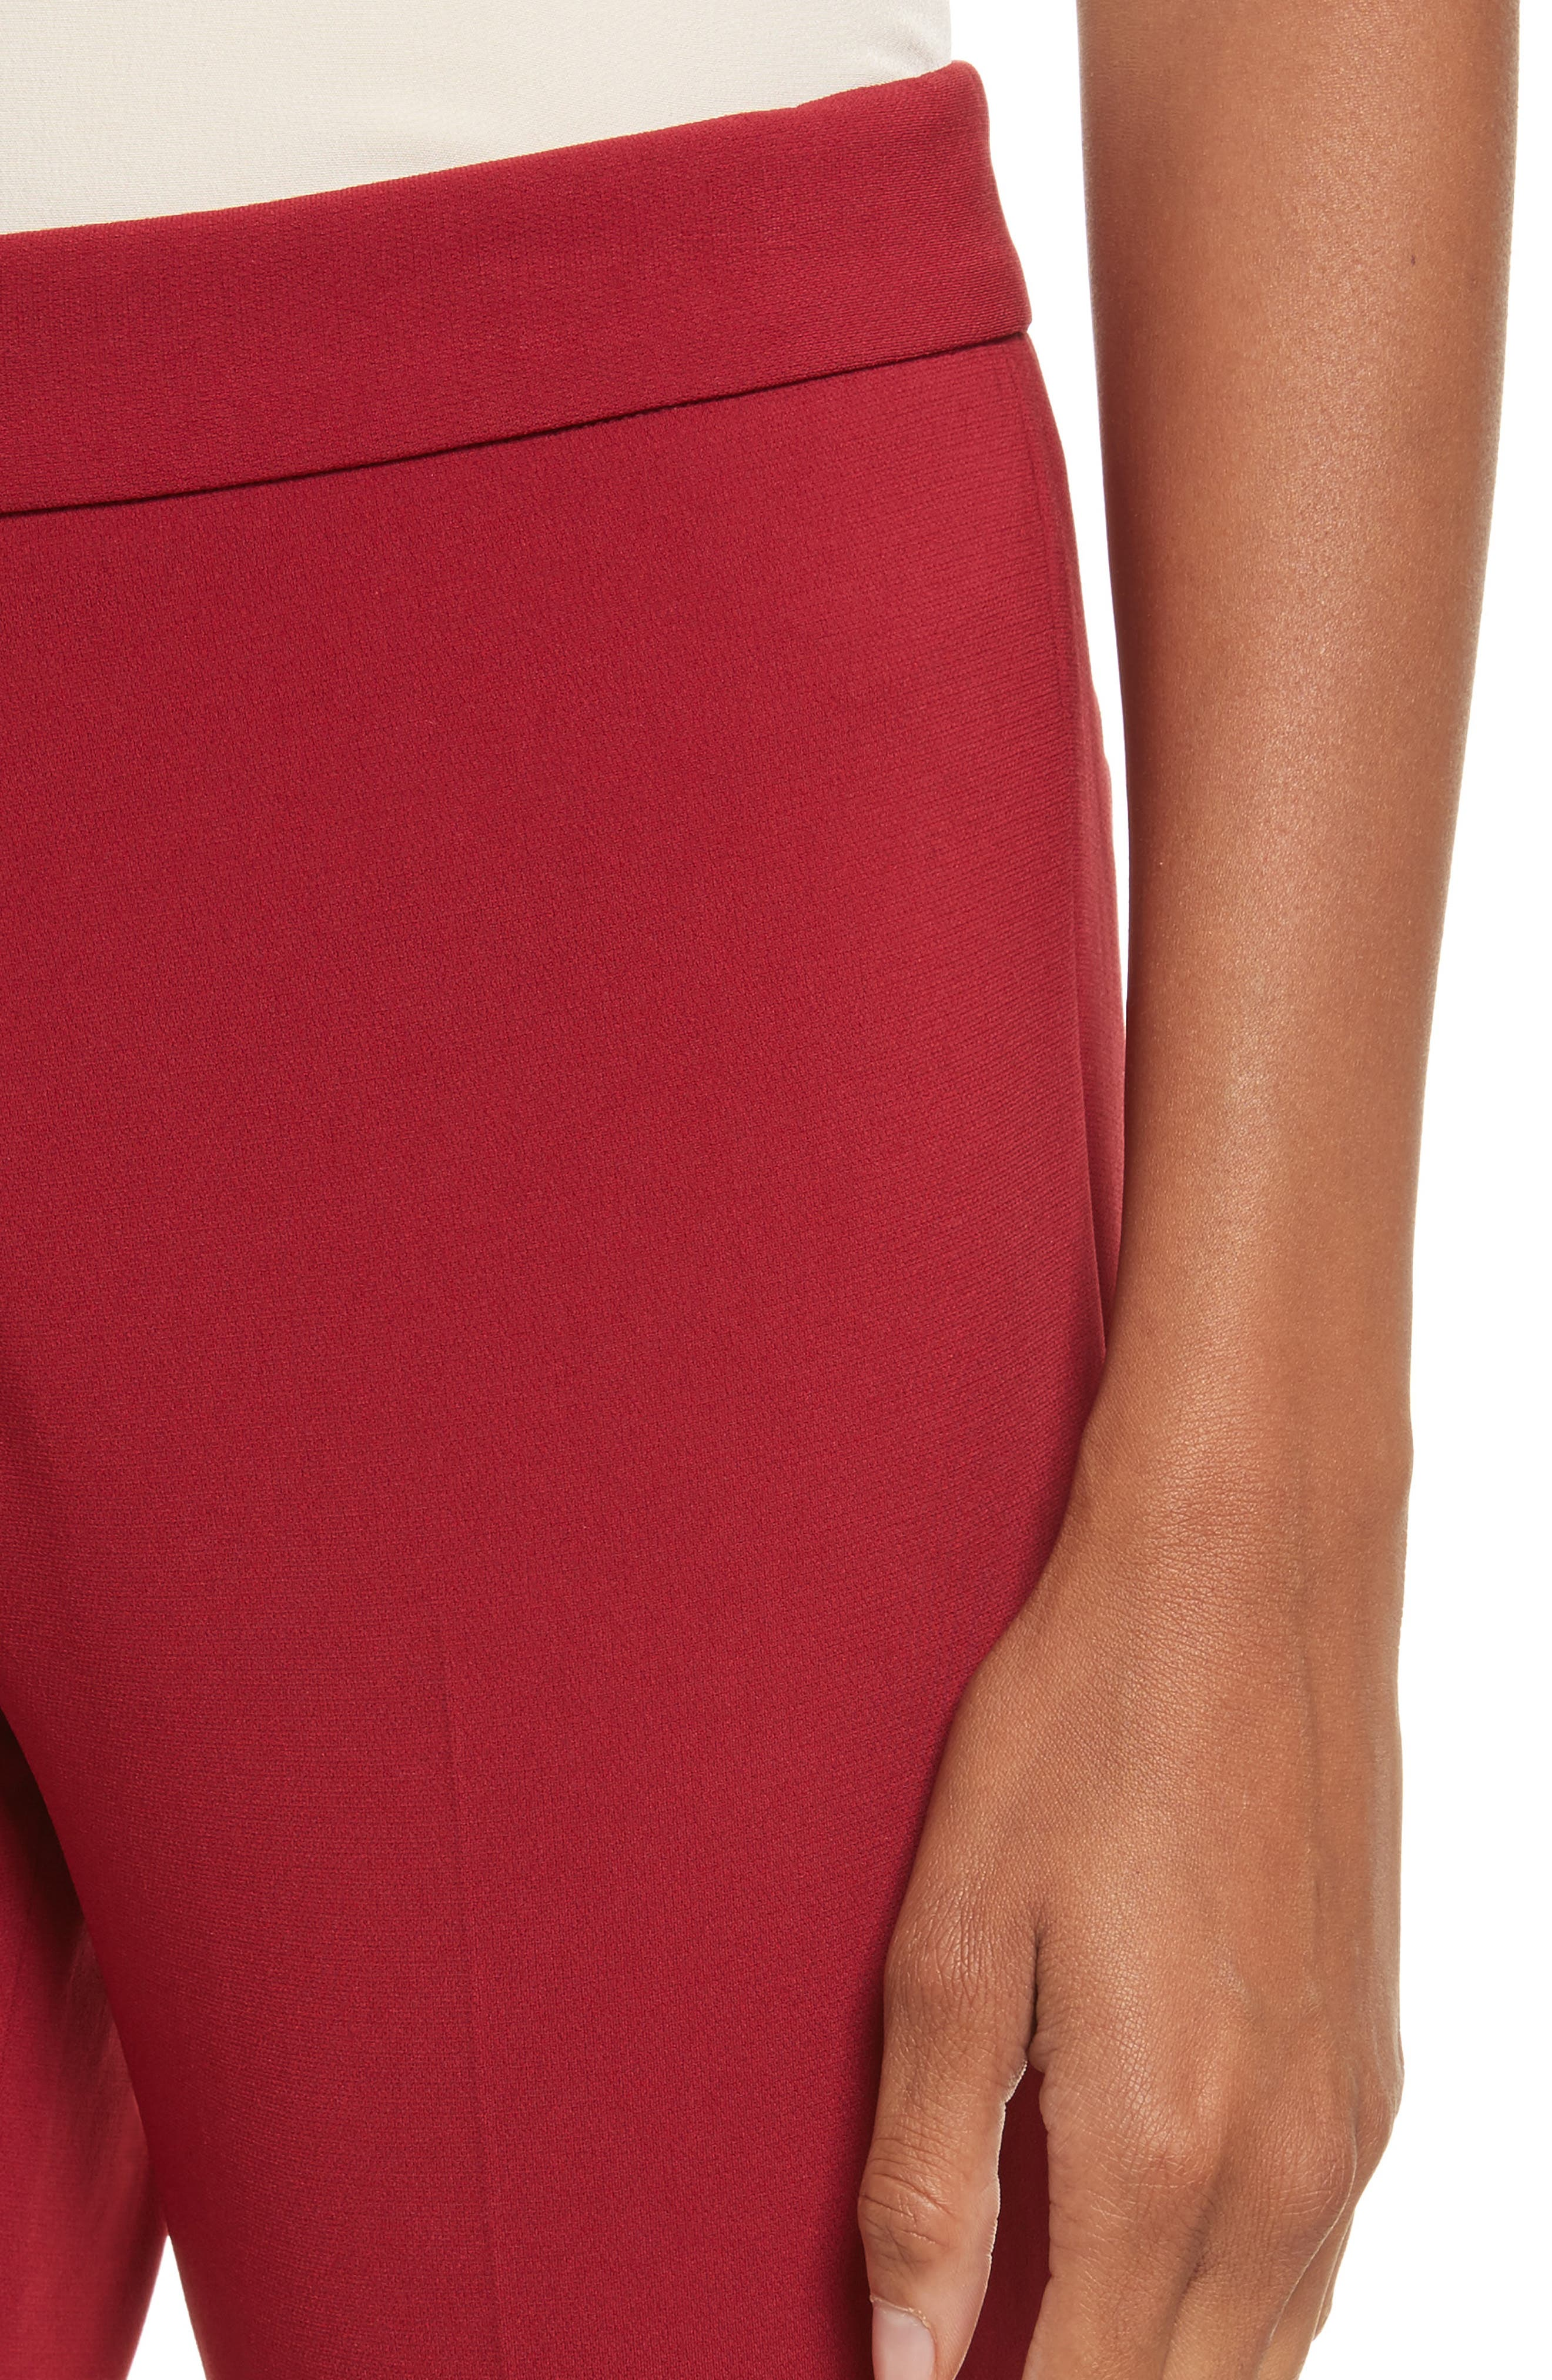 Admiral Crepe Kick Crop Pants,                             Alternate thumbnail 4, color,                             Bright Raspberry